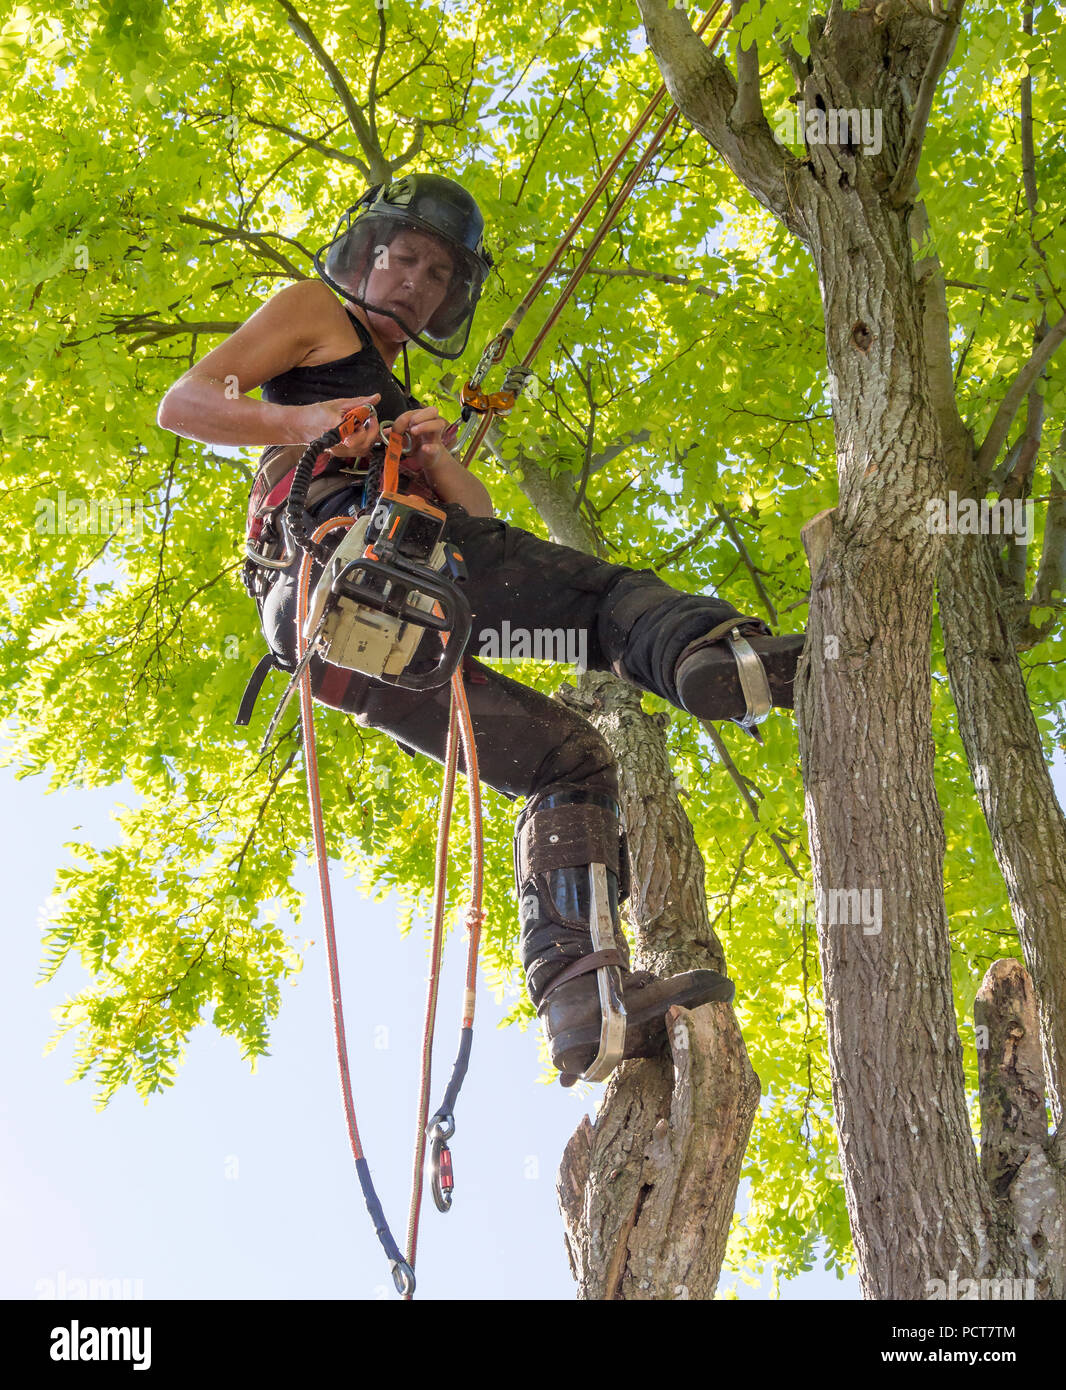 female Arborist getting ready to use a chainsaw - Stock Image